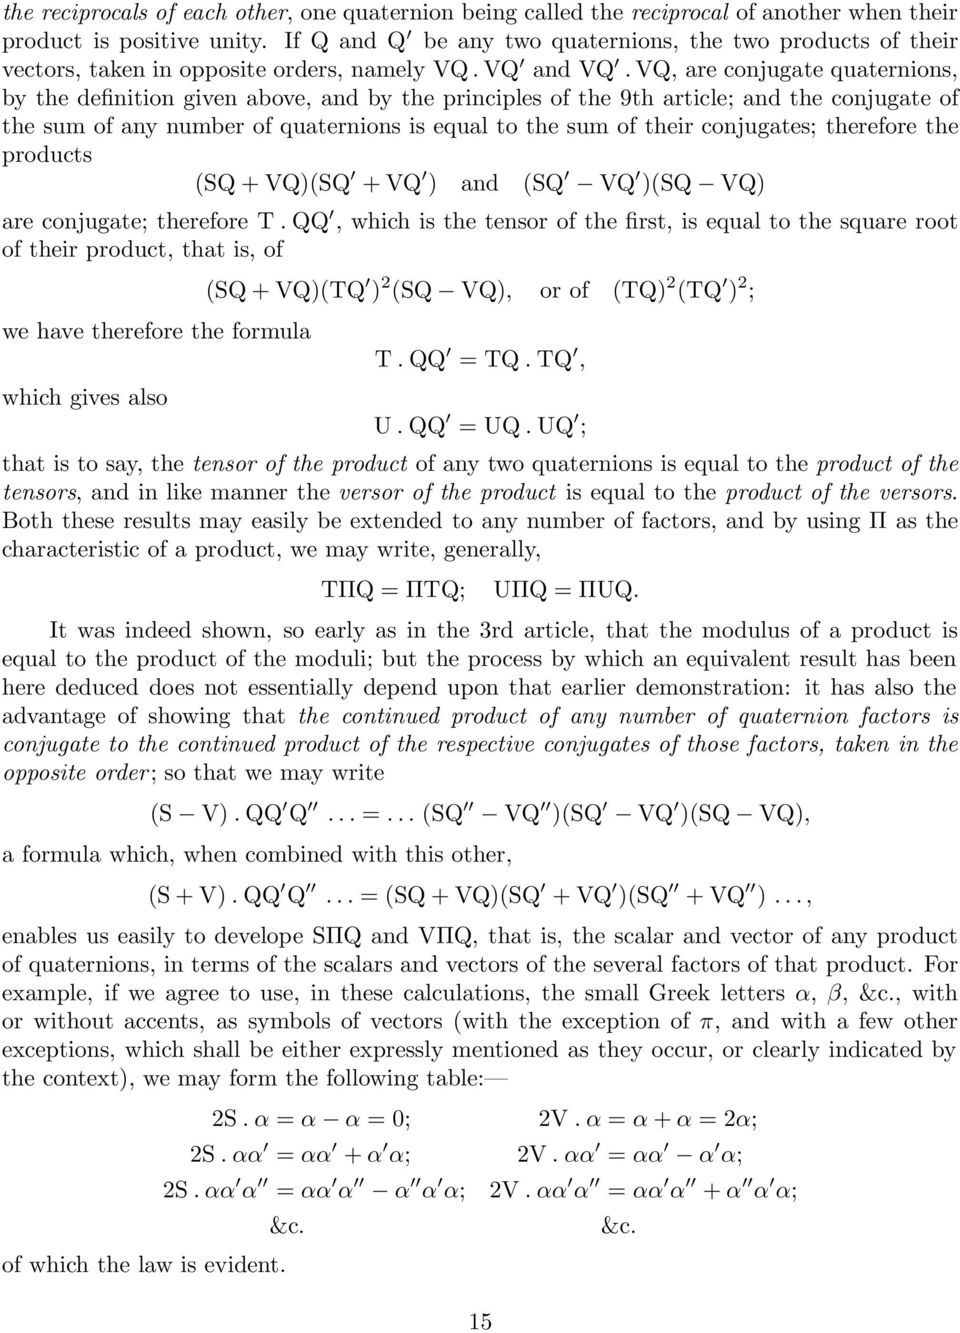 VQ, are conjugate quaternions, by the definition given above, and by the principles of the 9th article; and the conjugate of the sum of any number of quaternions is equal to the sum of their